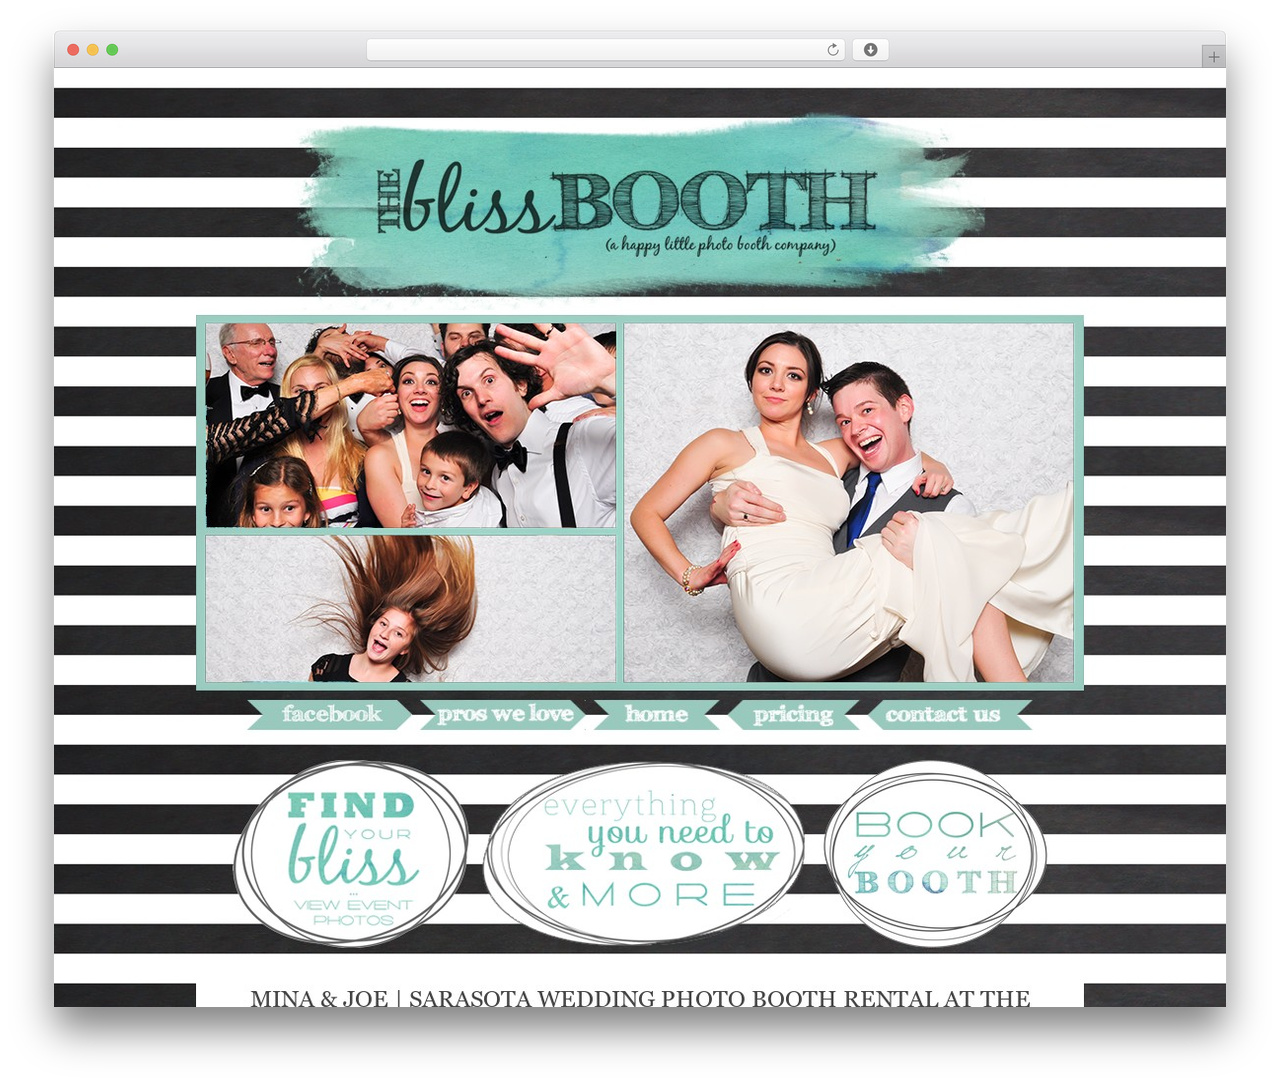 ProPhoto WordPress blog theme - theblissbooth.com